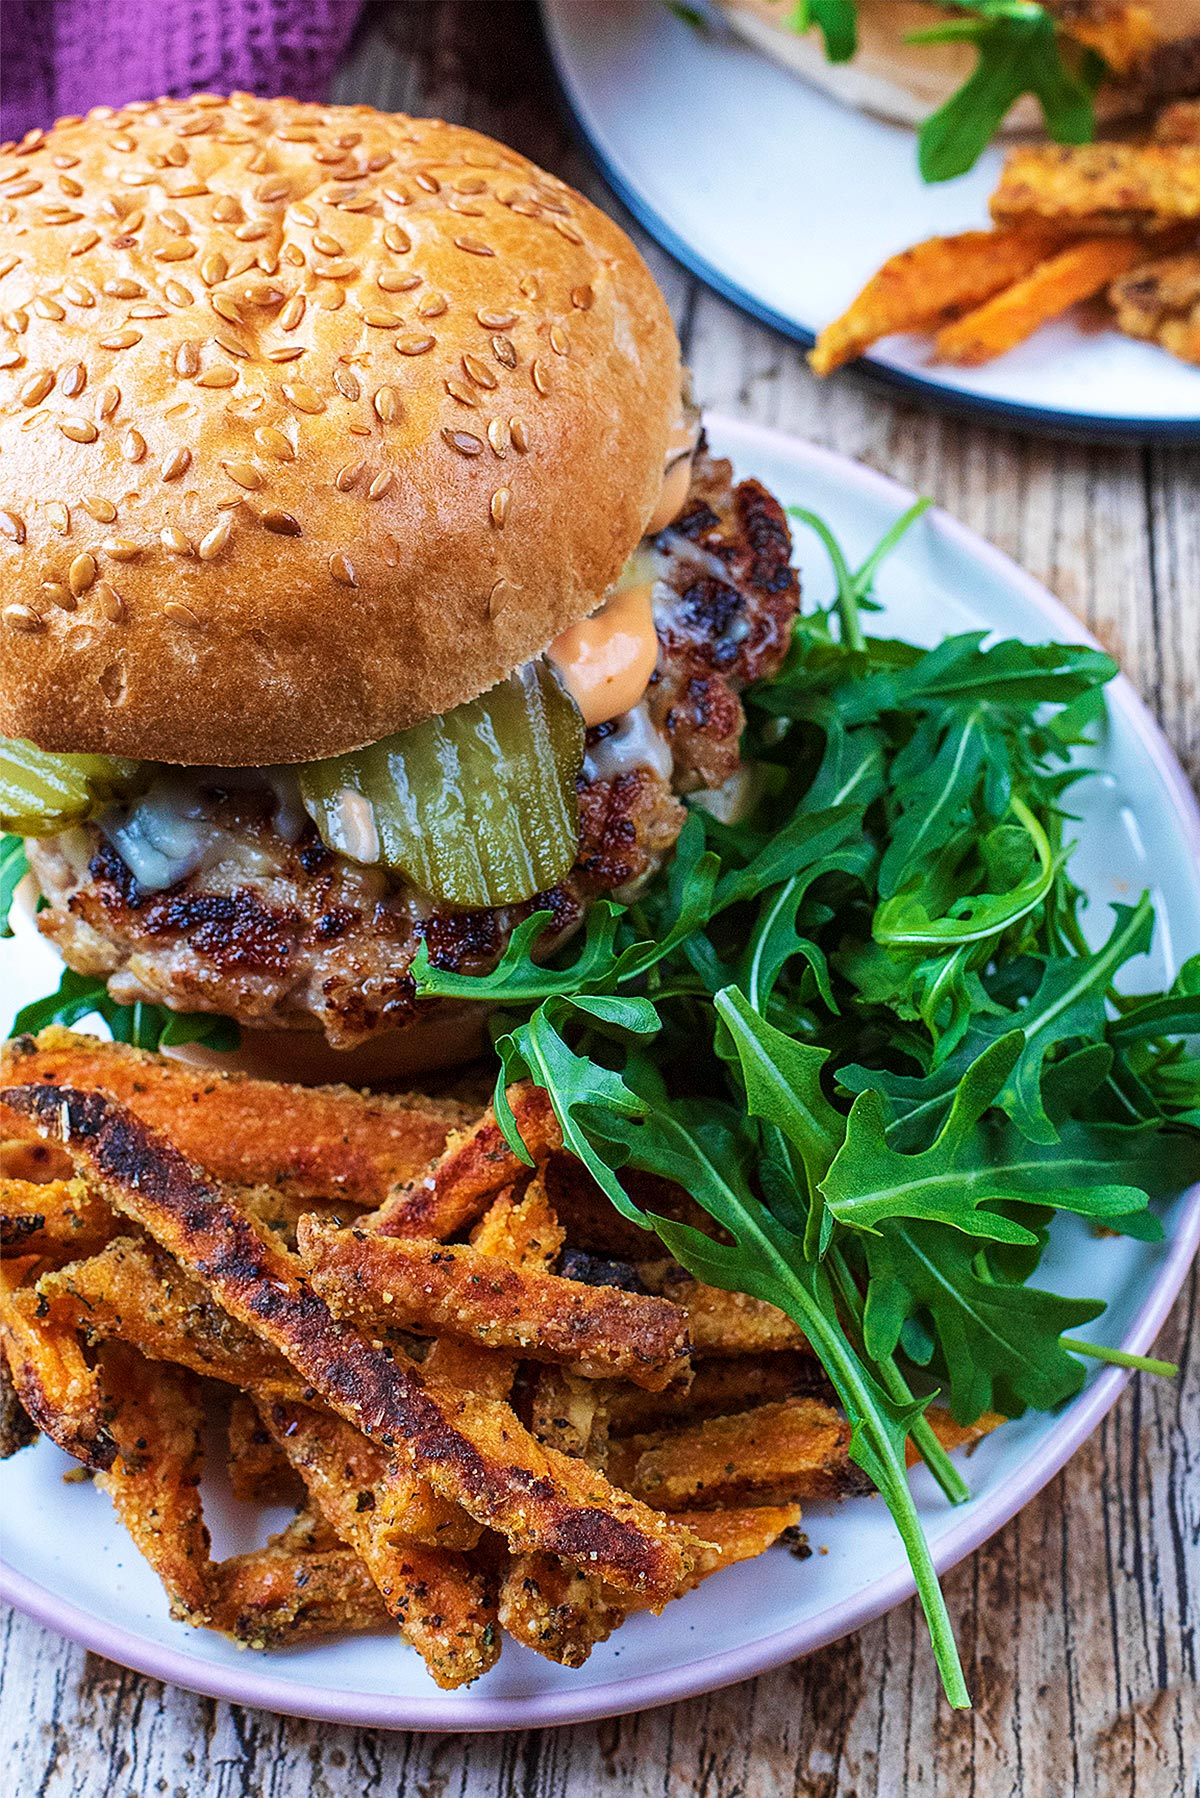 Pork burger in buns with fries and salad on a plate